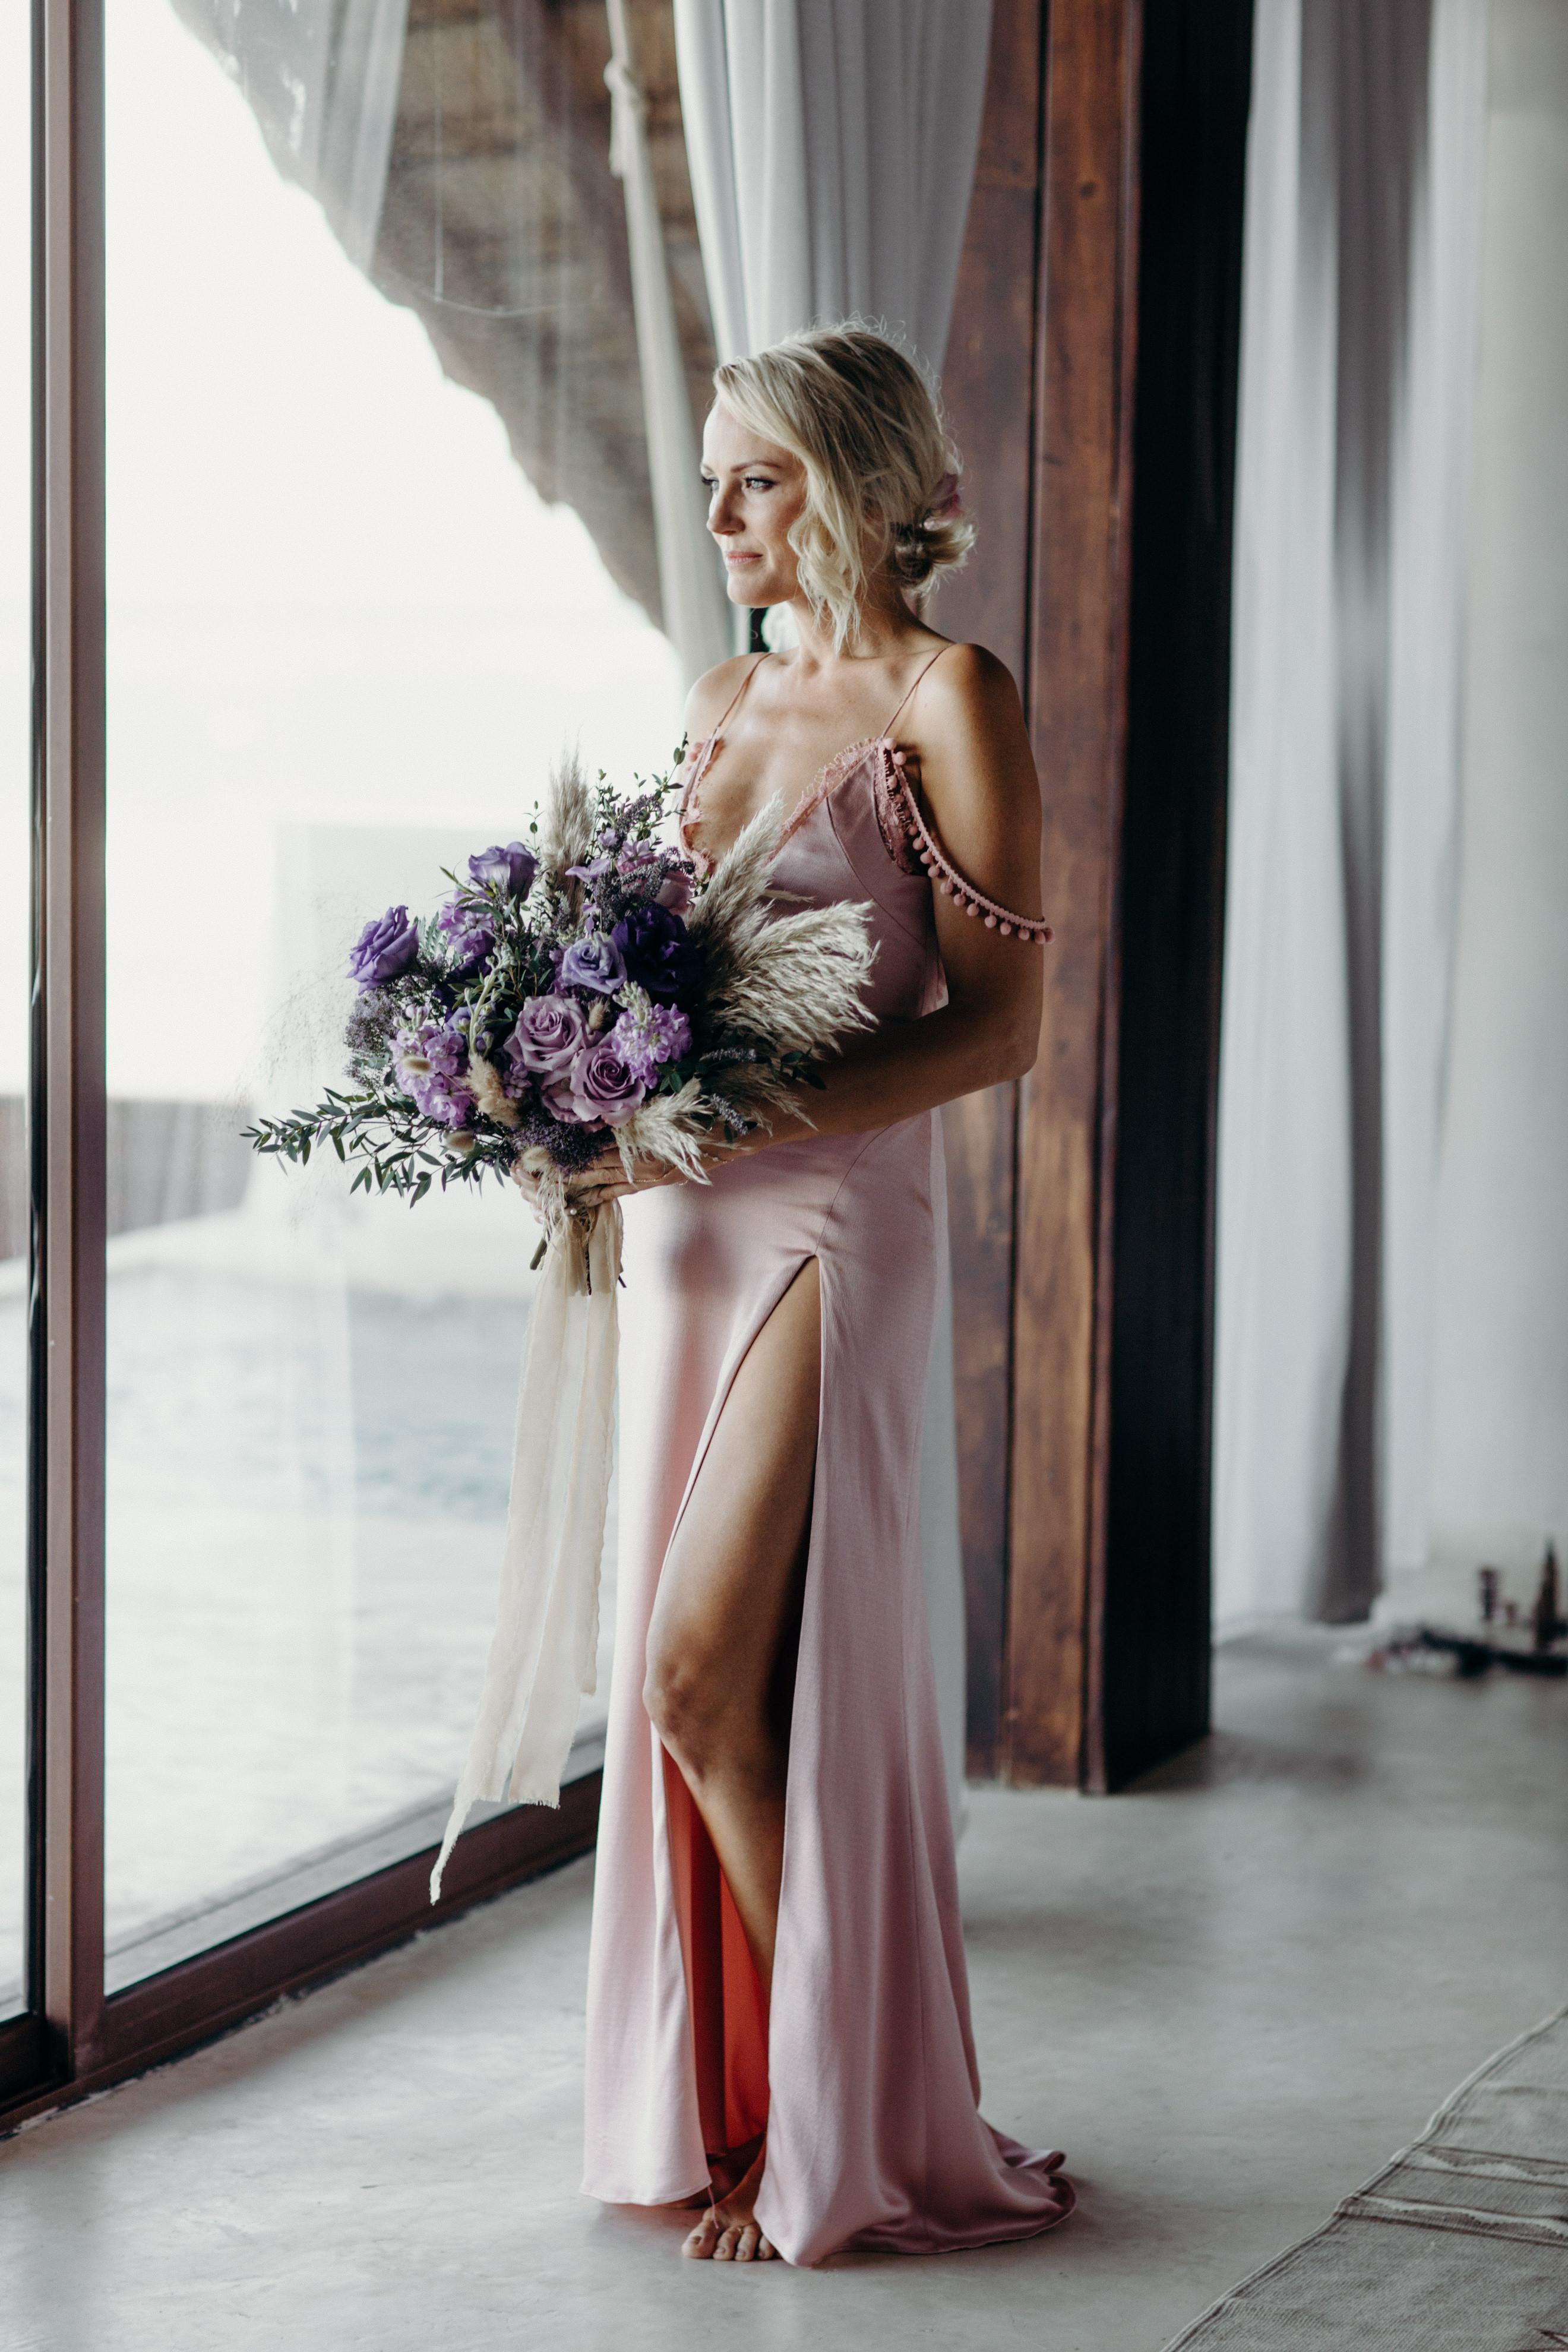 Malin Akerman On Choosing A Blush Wedding Dress For Second Marriage I Wanted To Be Different,Jc Penny Jcpenney Wedding Dresses